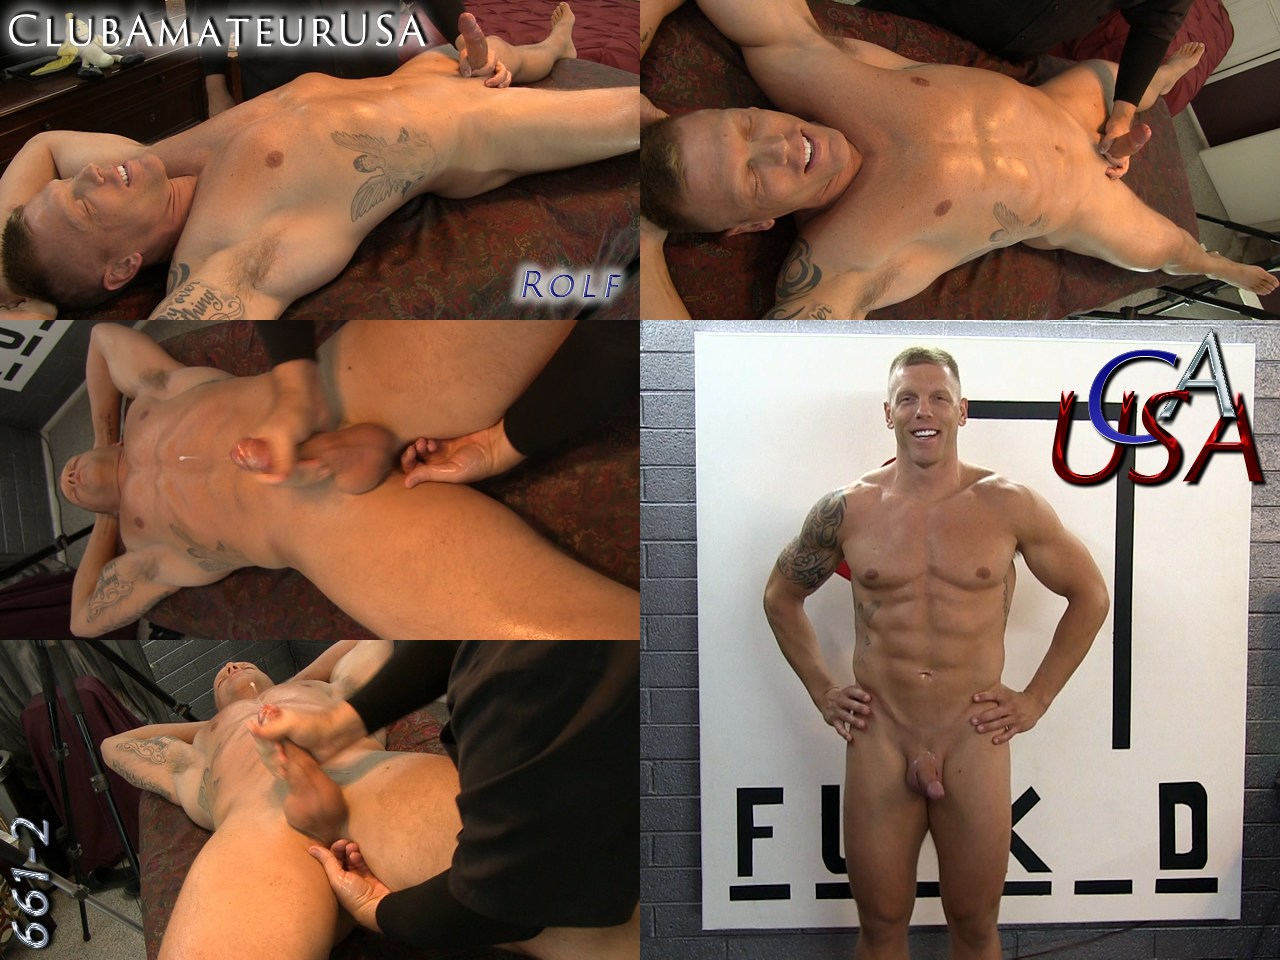 Download or Stream CAUSA 661 Rolf - 2 of 2 - Click Here Now